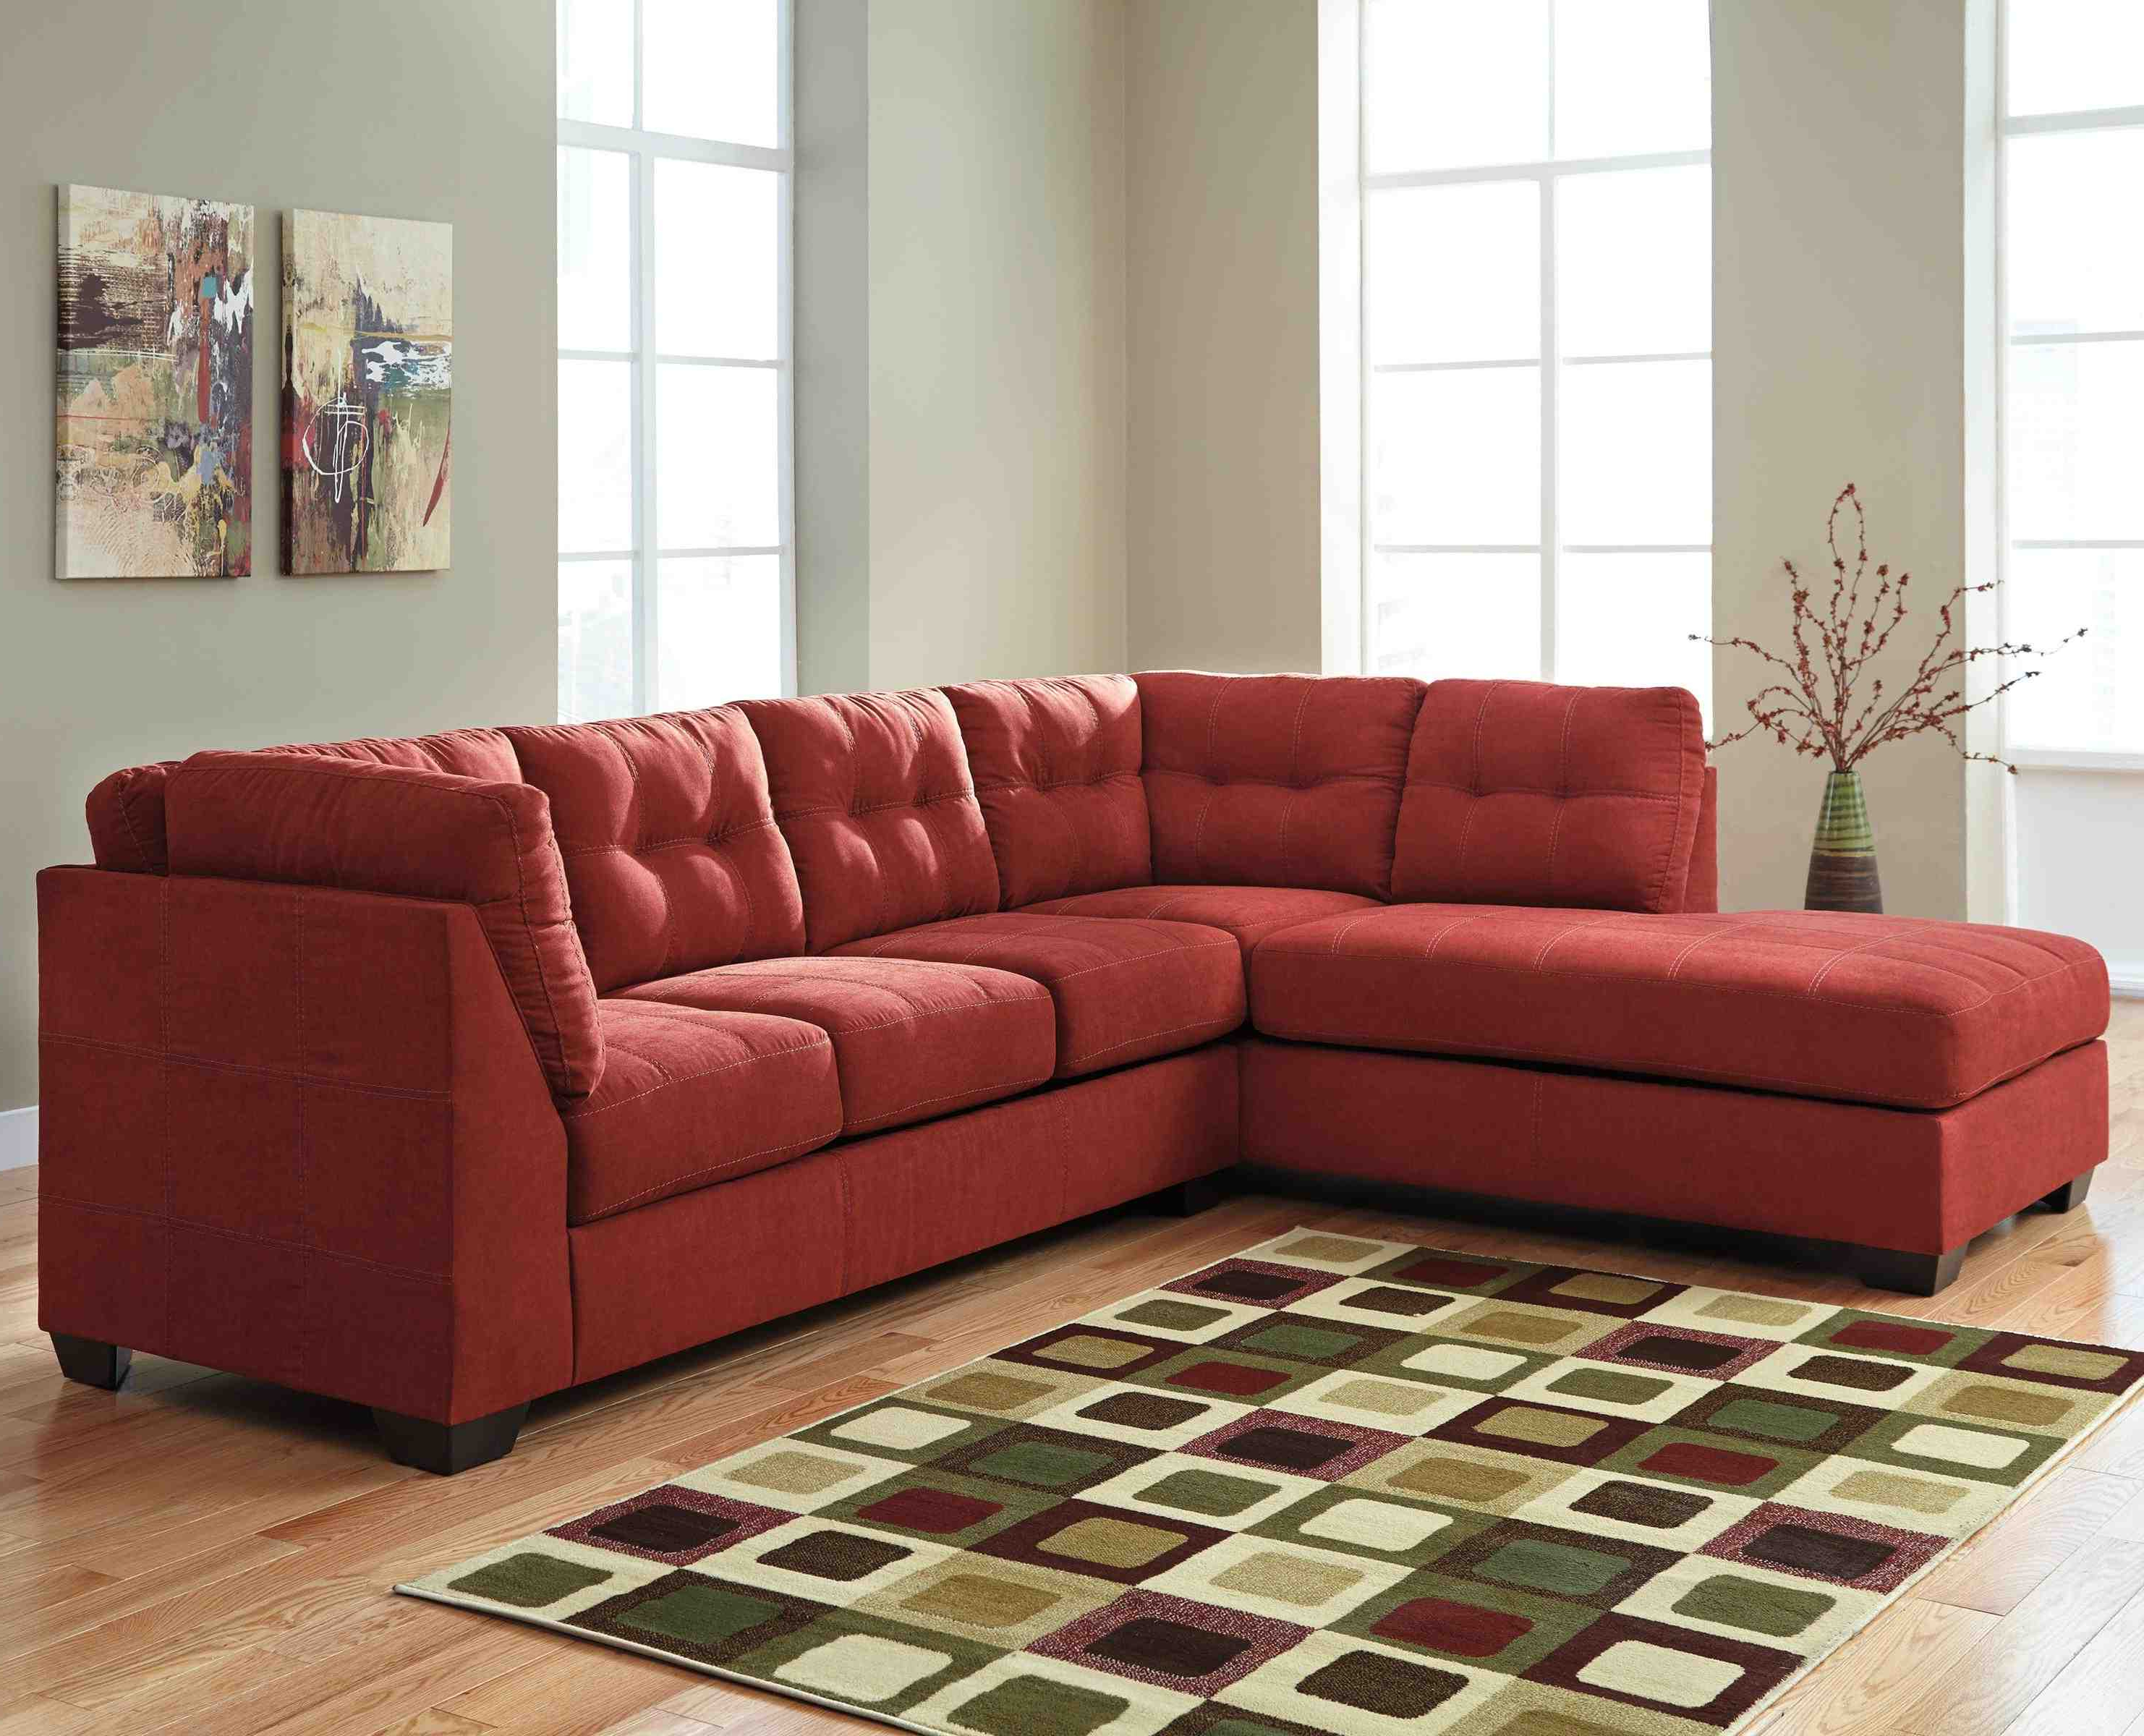 Delano 2 Piece Sectionals With Raf Oversized Chaise With Most Current Delano 2 Piece Sectional W/laf Oversized Chaise Living Spaces (View 5 of 20)